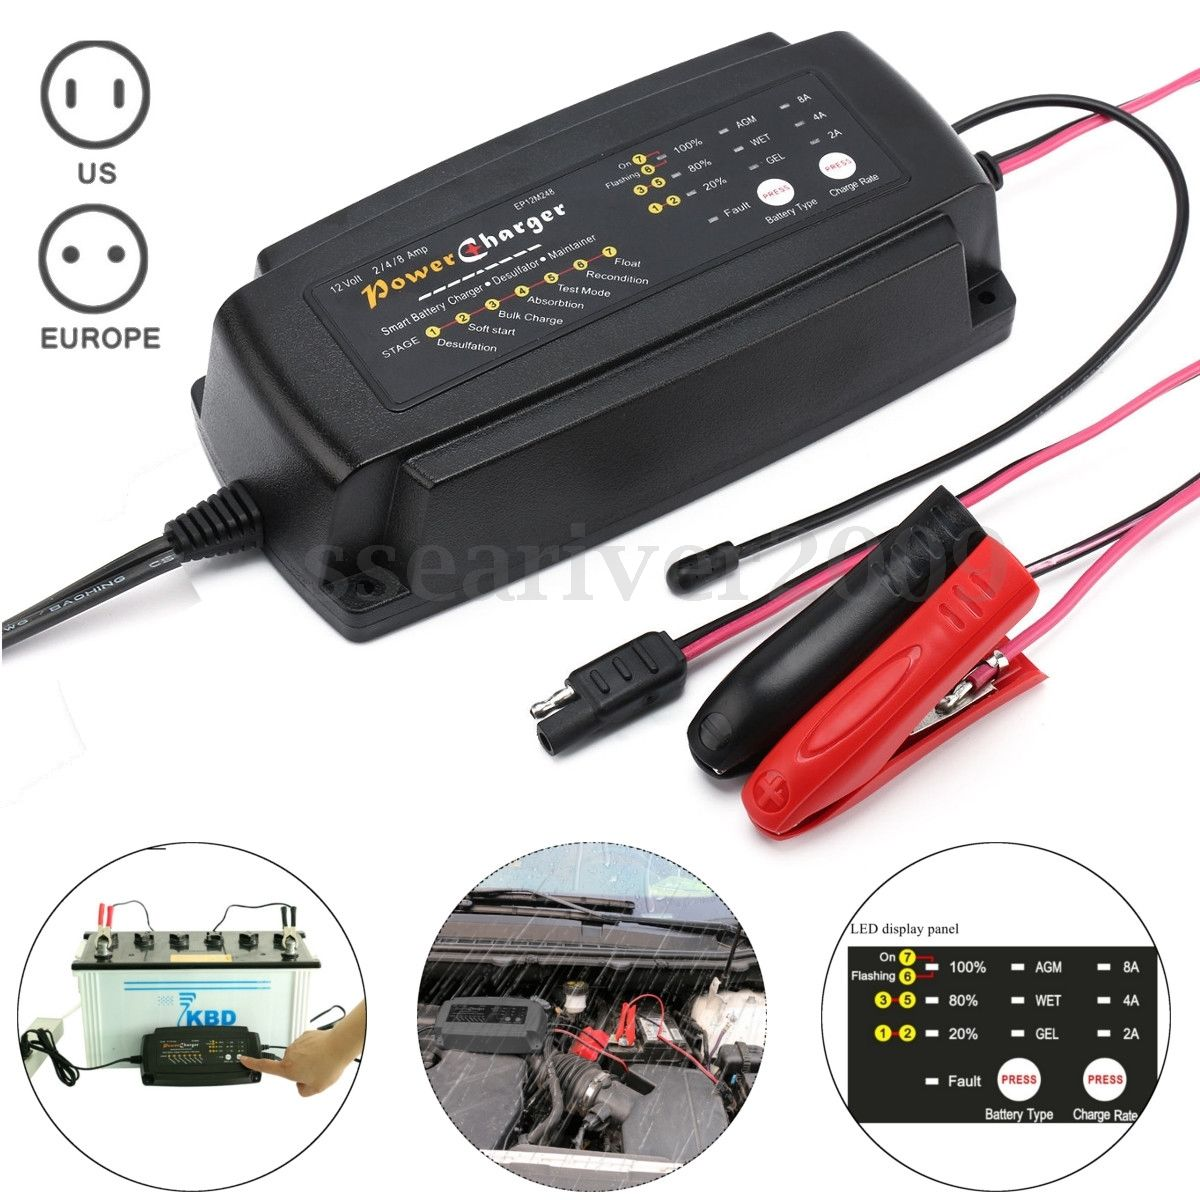 <font><b>12V</b></font> 2/4/8A Automatic Smart Car <font><b>Battery</b></font> Charger 7-Stage Maintainer &#038; <font><b>Desulfator</b></font> Car Motorcycle GEL WET AGM <font><b>Battery</b></font> type &#038; Charge